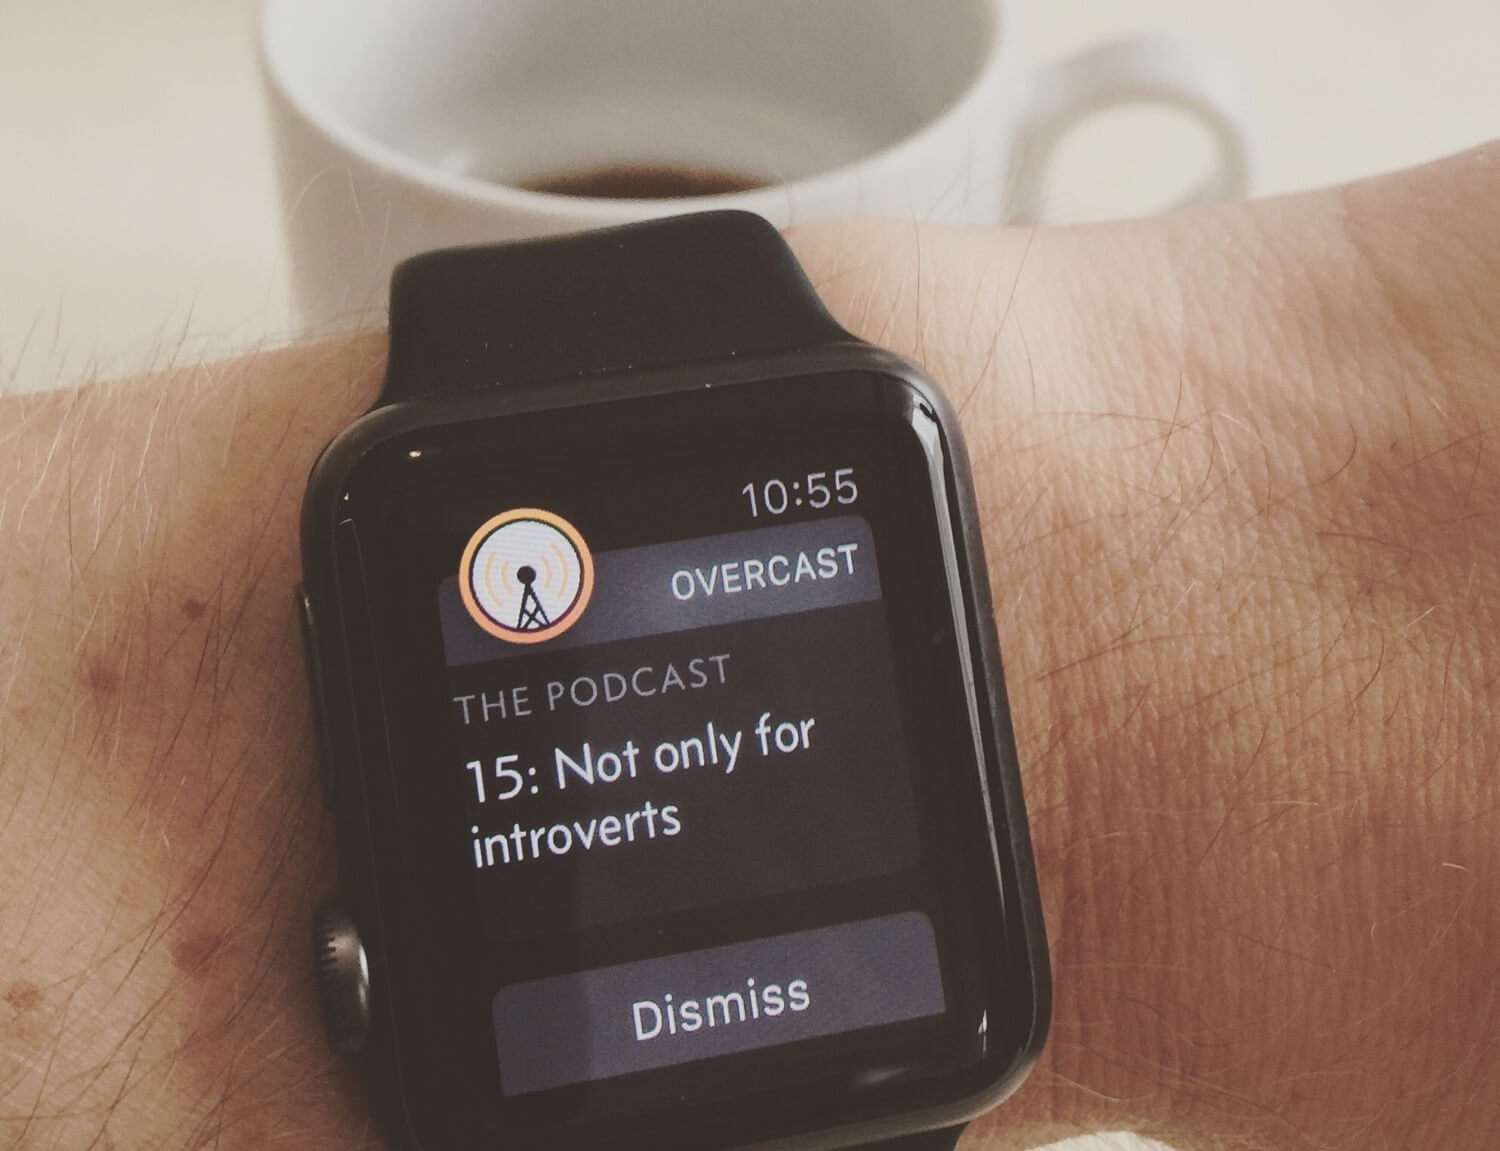 Apple Watch 2.0 and thoughts after 4 months wearing it